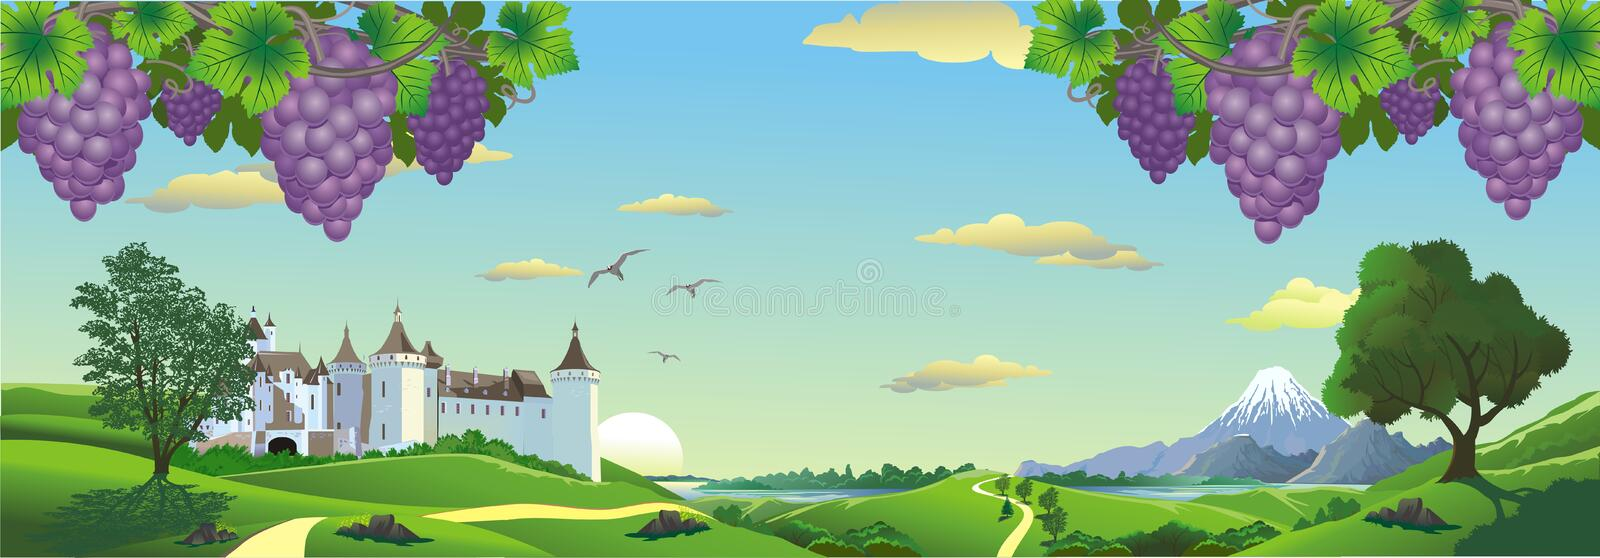 Landscape panorama with bunches of grapes and an ancient castle on the hill. royalty free illustration